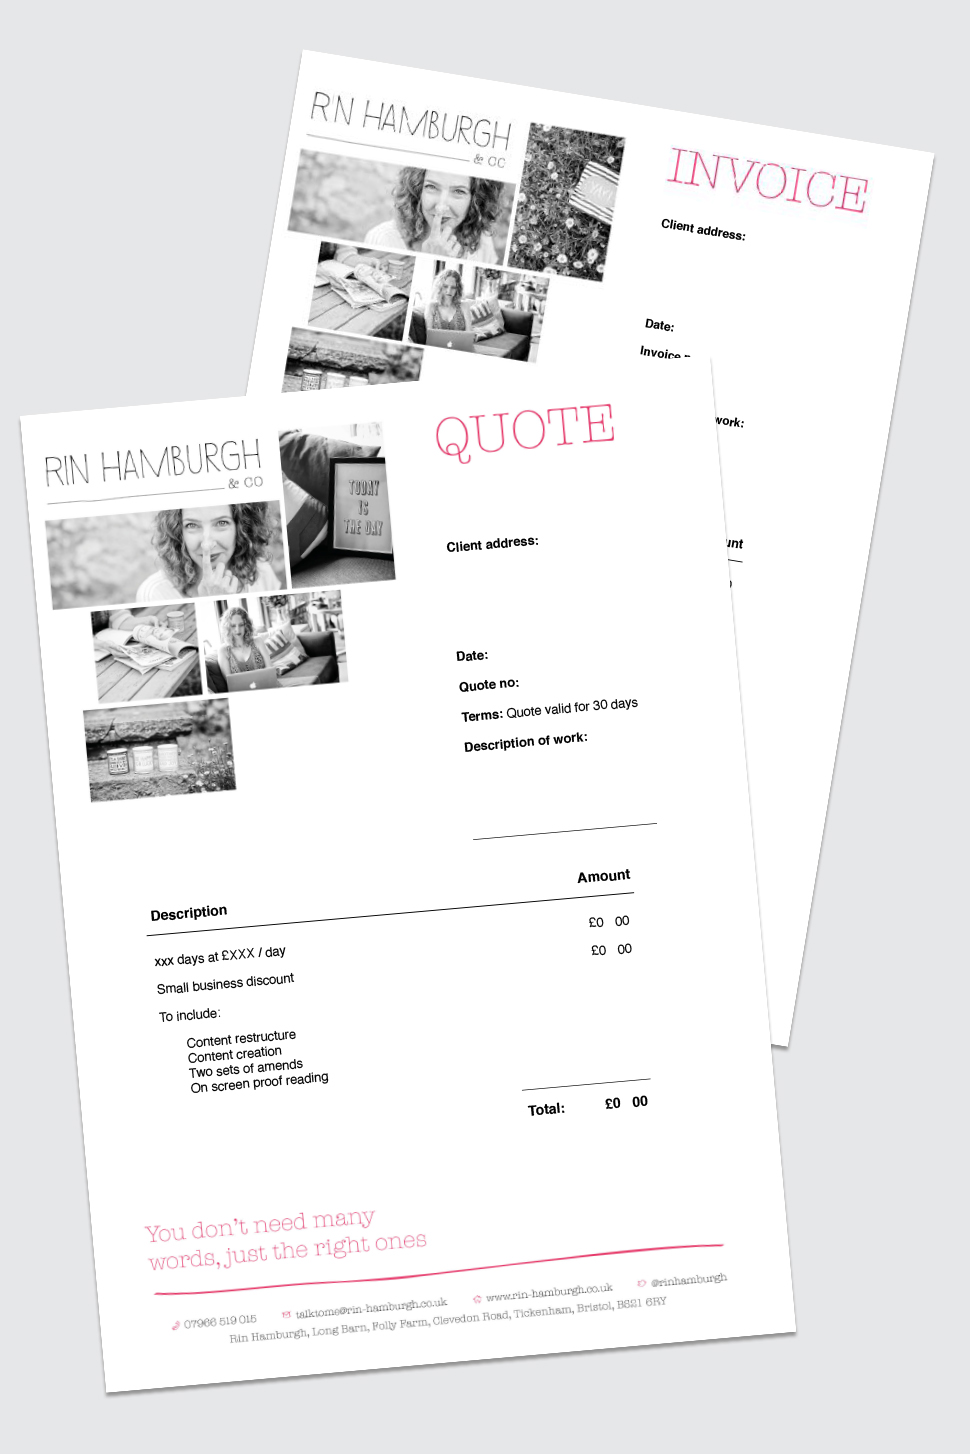 Invoice and quote template in Pages